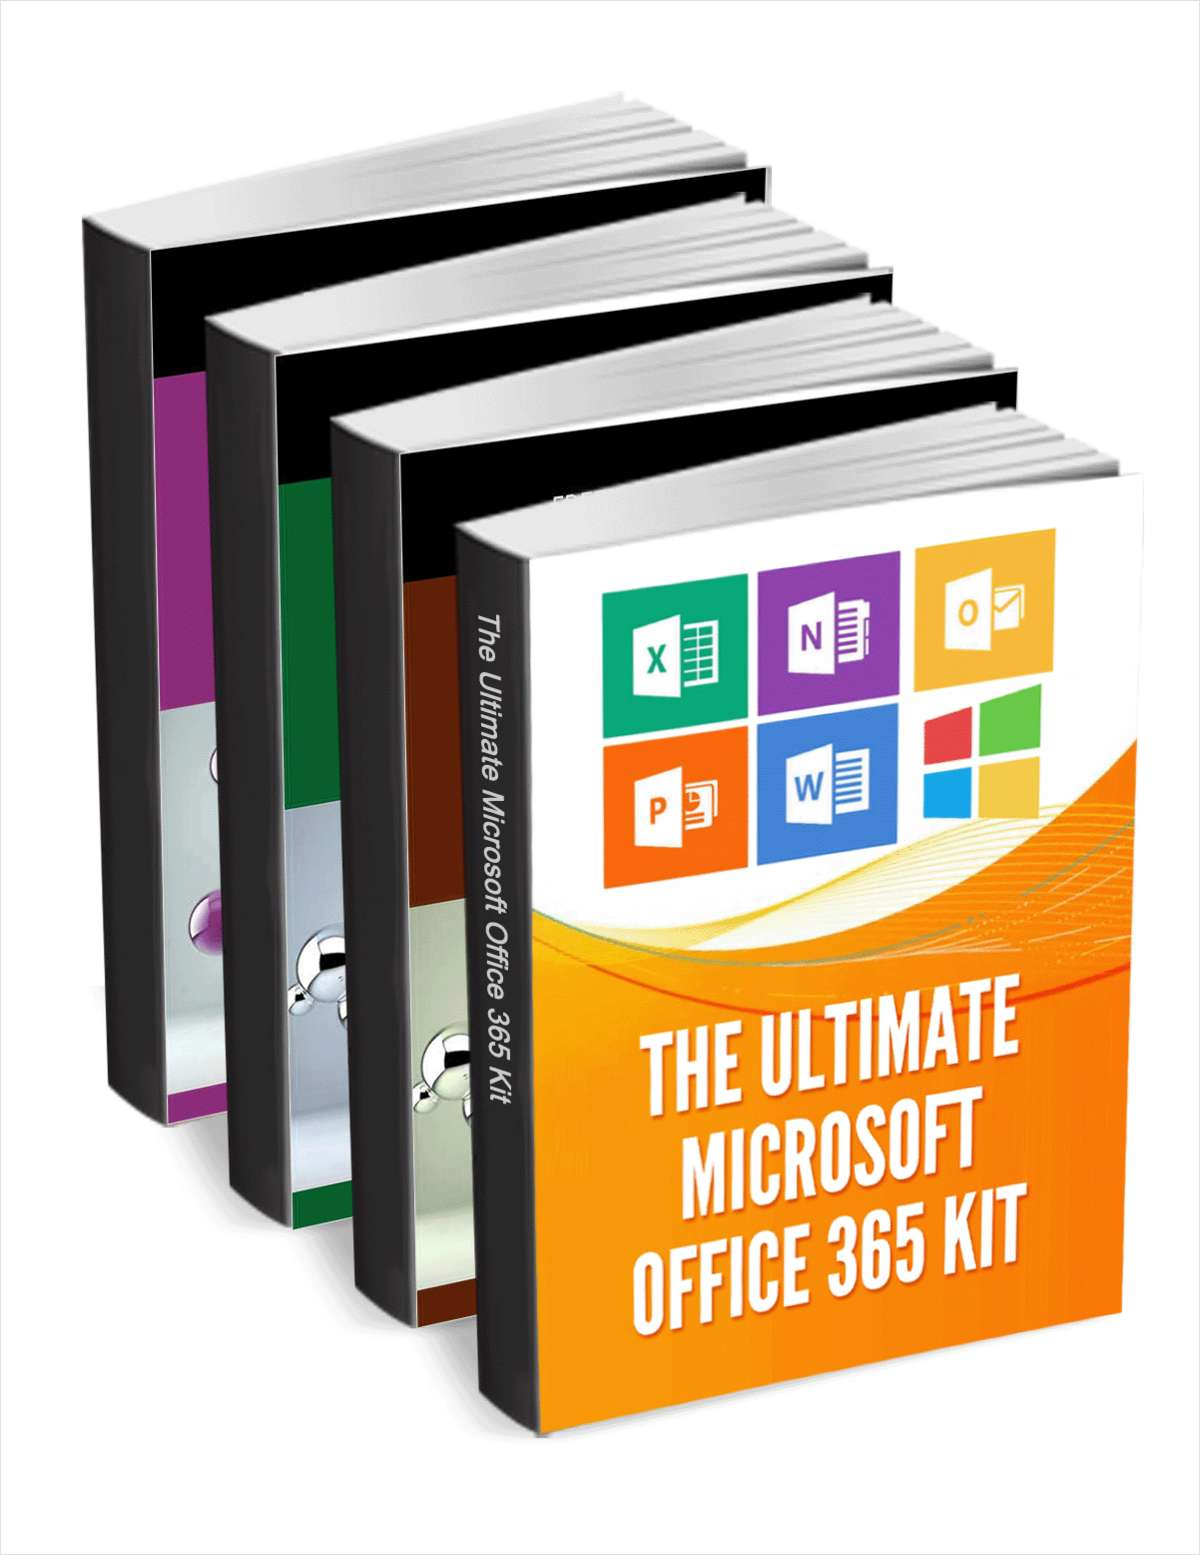 The Ultimate Microsoft Office 365 Kit